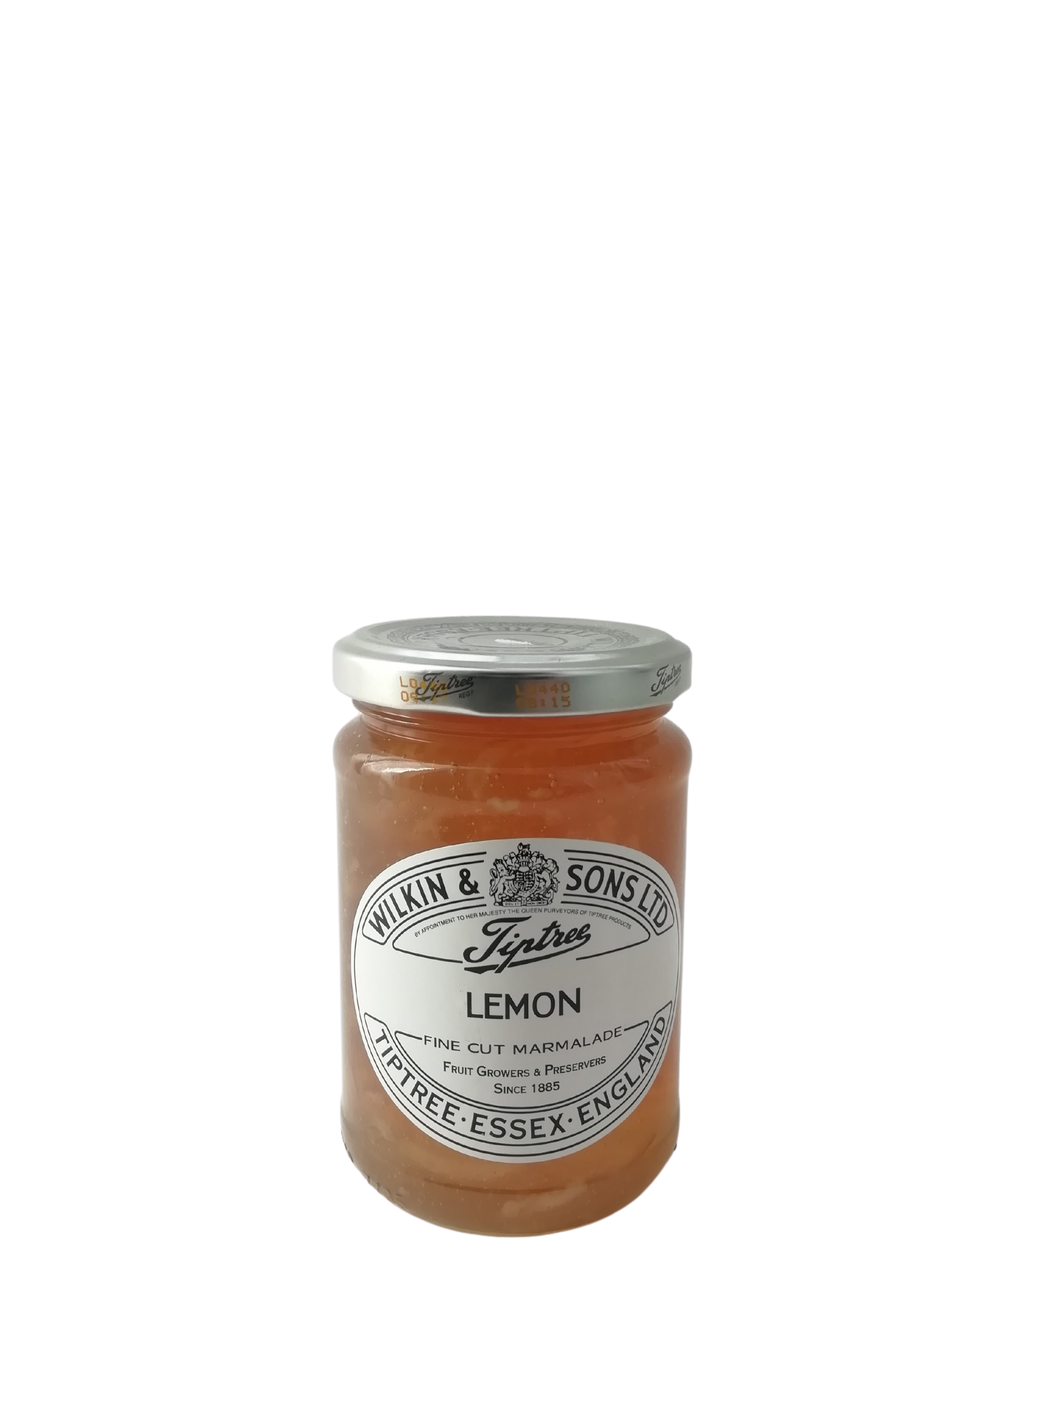 TIPTREE LEMON FINE CUT MARMALADE 340G